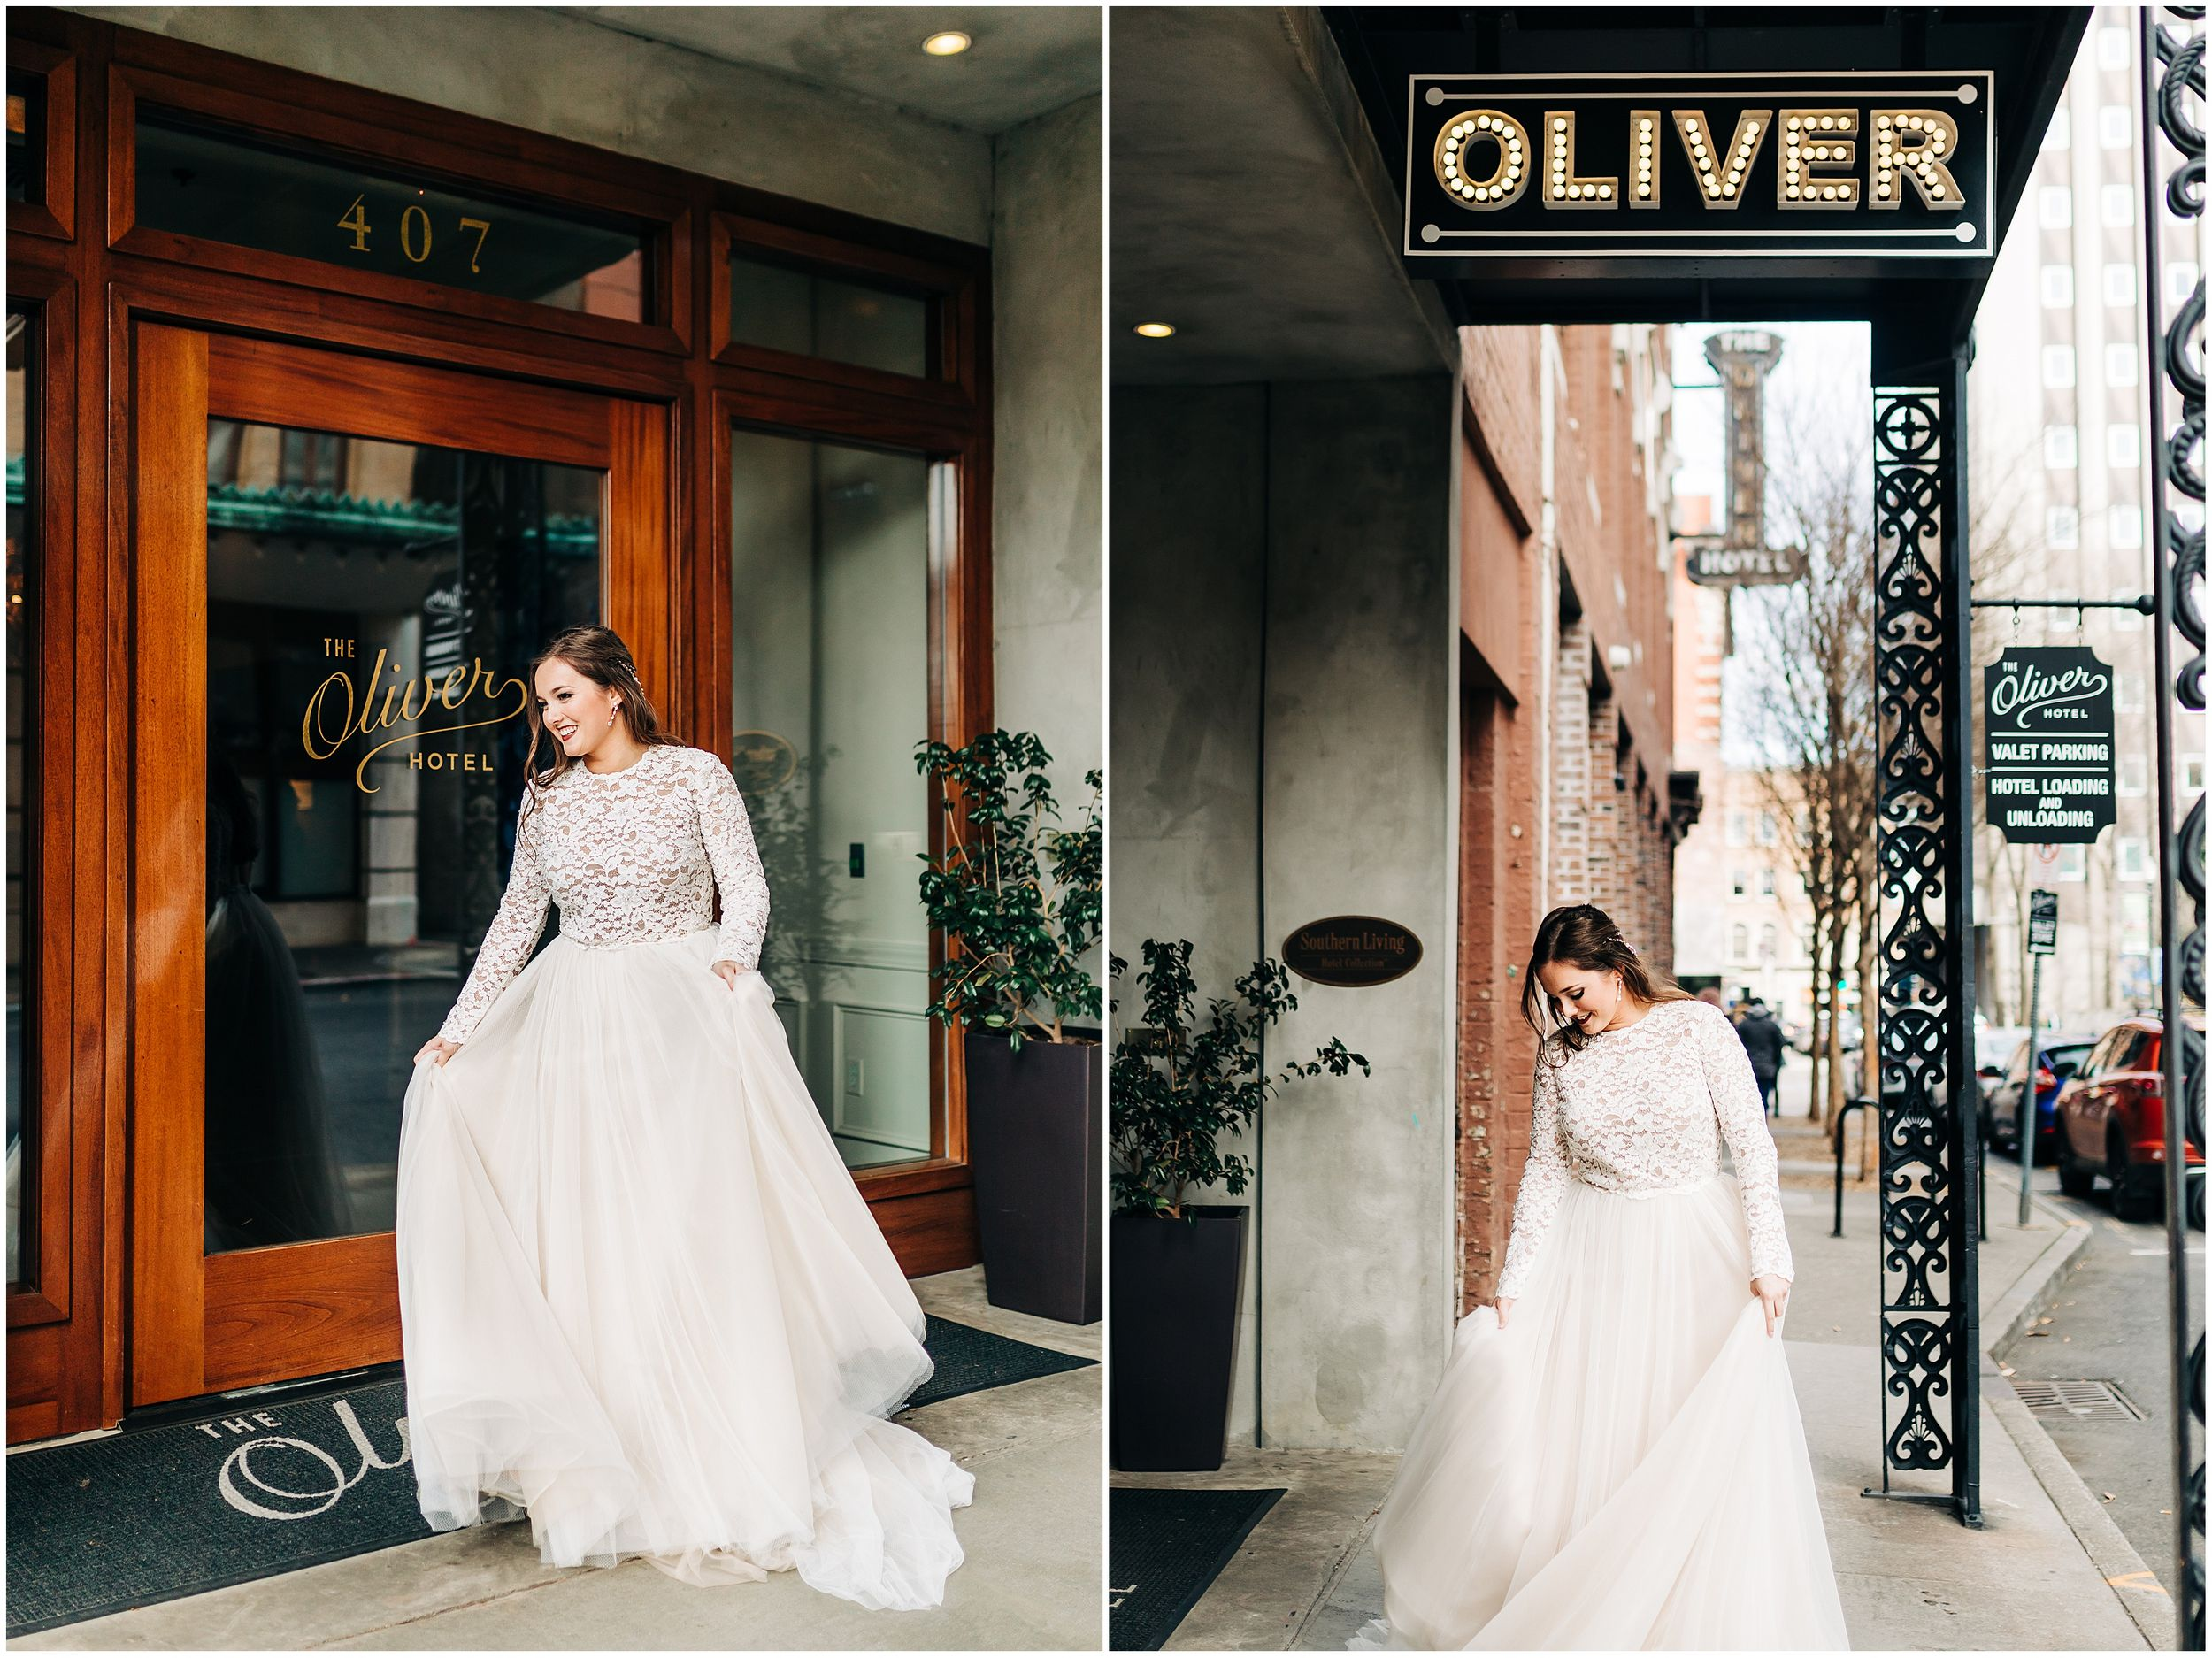 Oliver Hotel Knoxville Tennessee Wedding